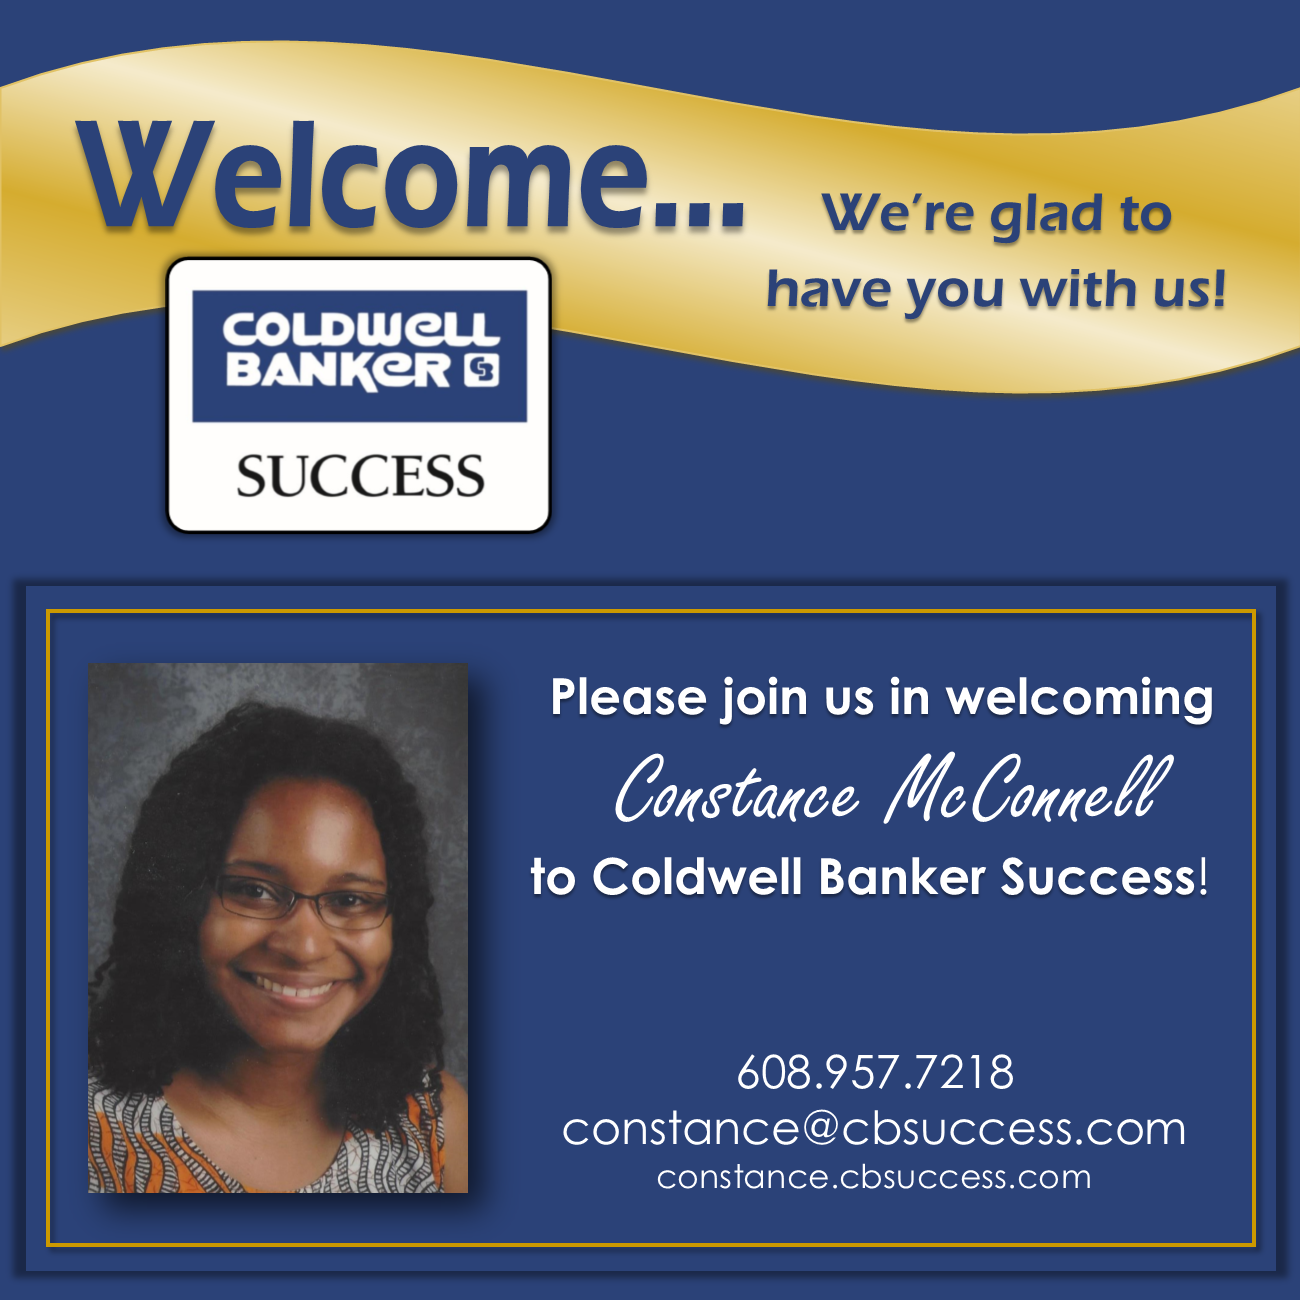 Welcome Constance McConnell!